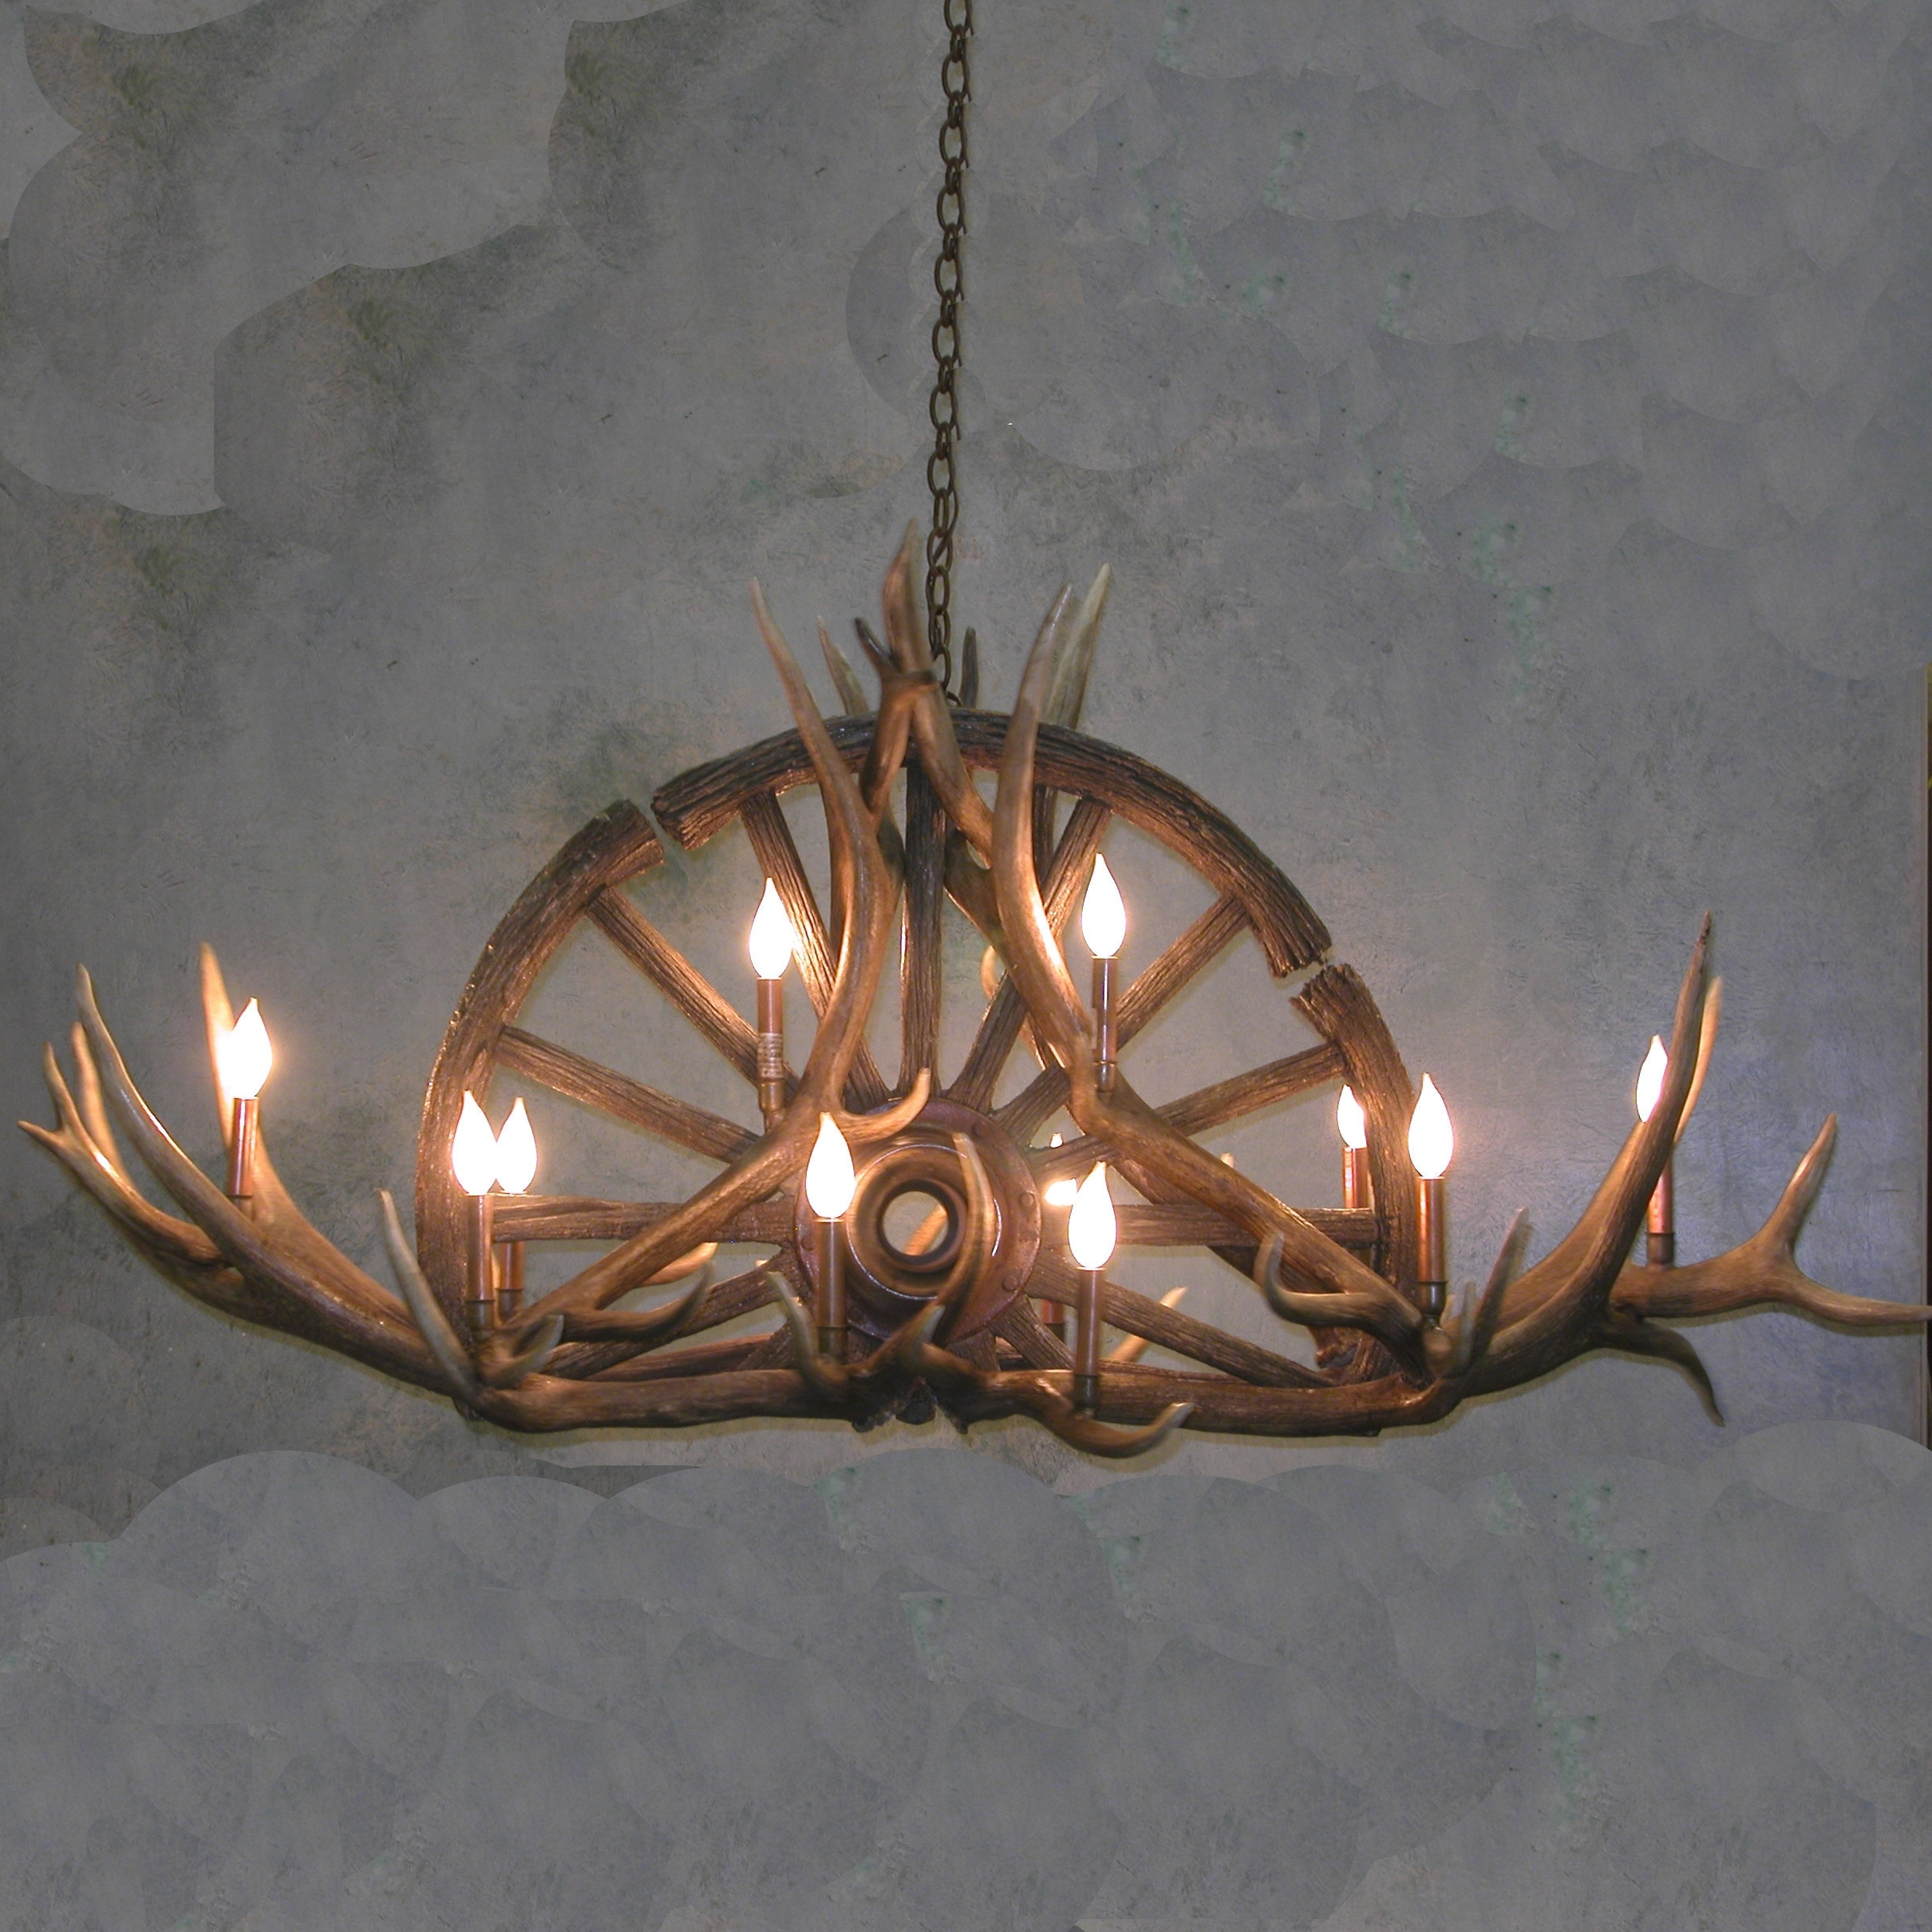 Wagon Wheel Antler Chandelier With Regard To Most Recent Large Antler Chandelier (View 10 of 15)